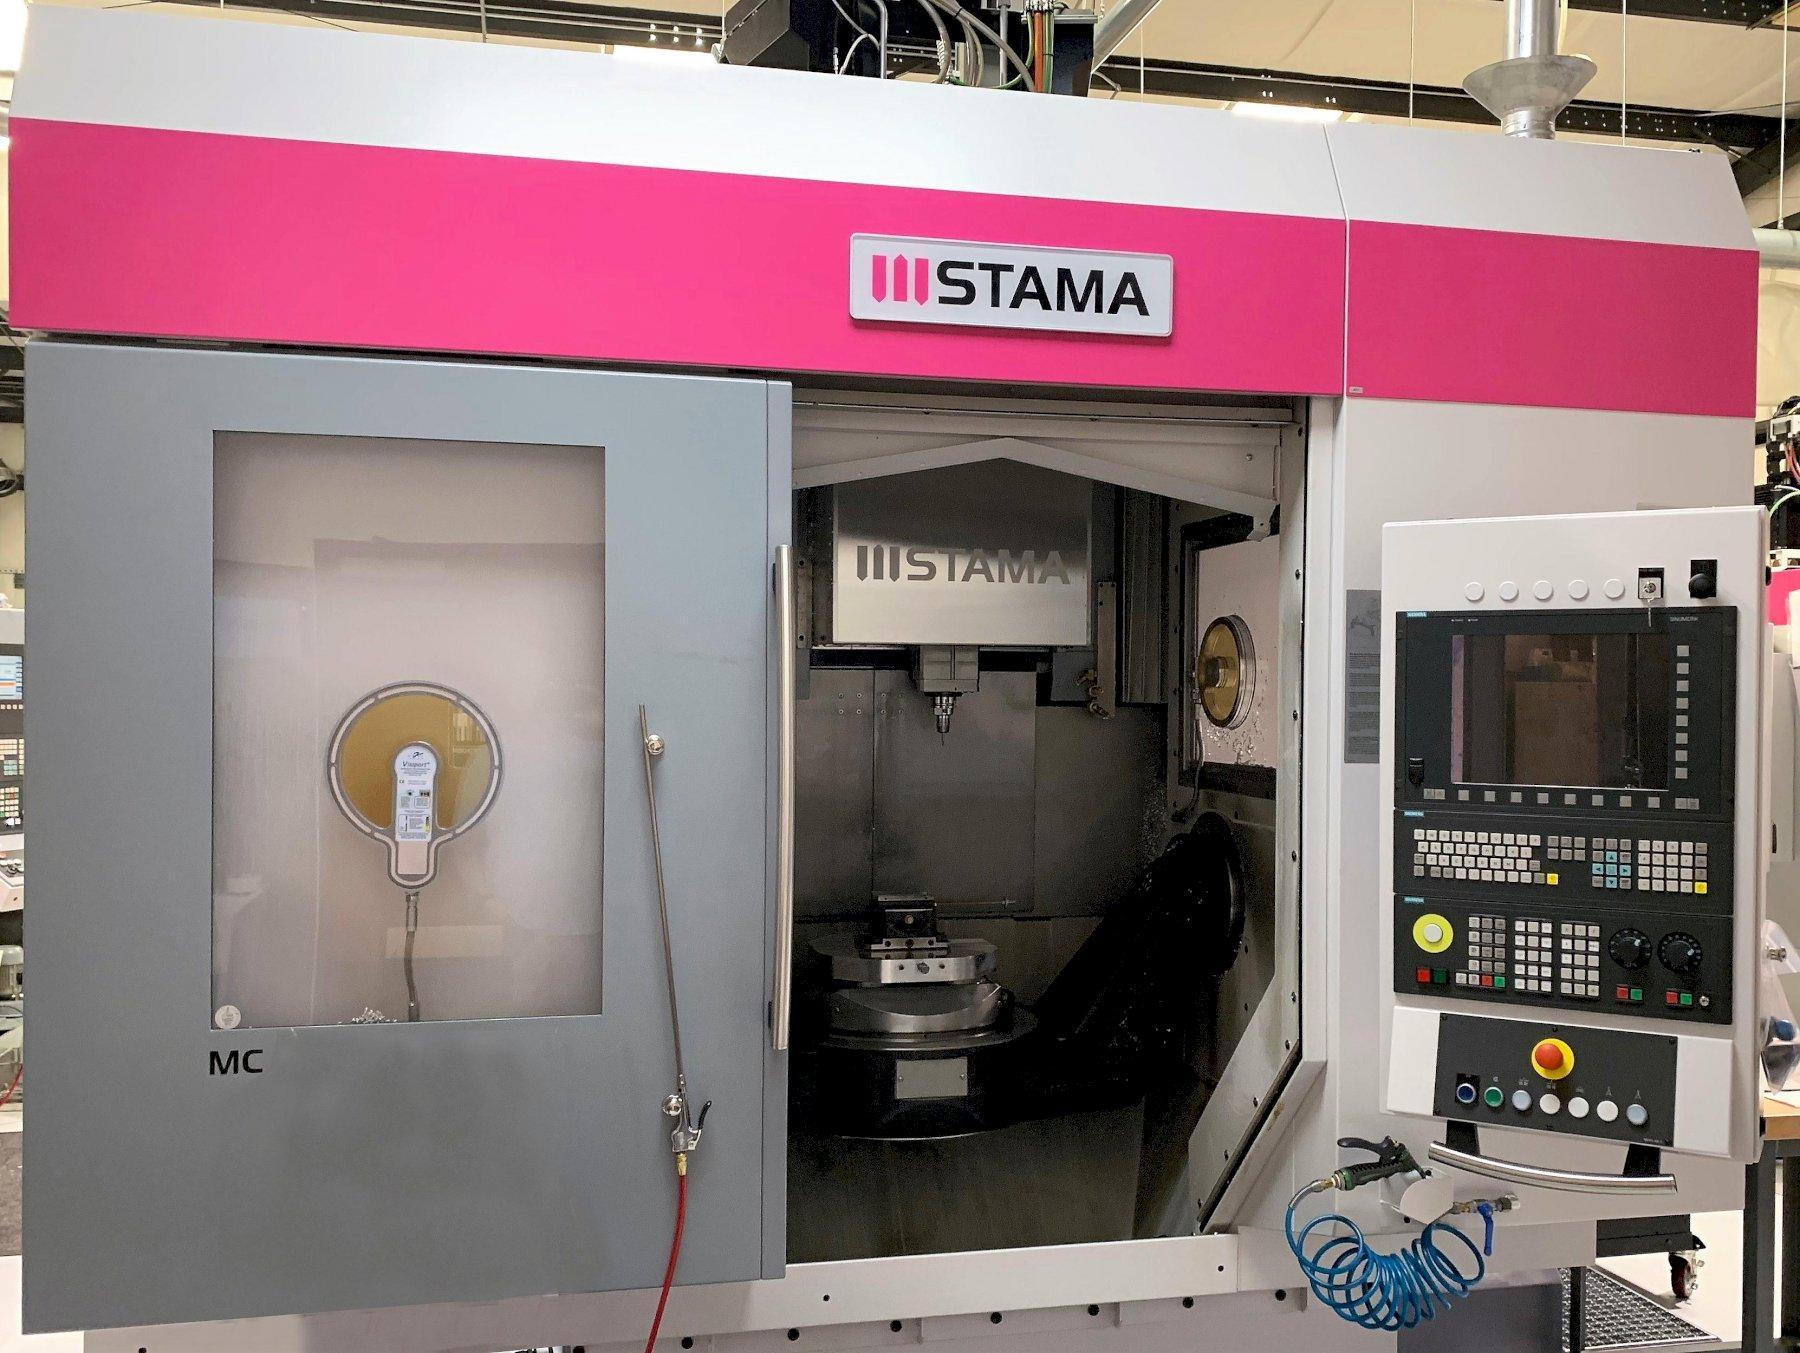 """Stama MC 533 5-Axis HS VMC 2014, with: Siemens 840D Control, 19"""" Rotary Table, Full Probe System, and Coolant Thru Spindle."""